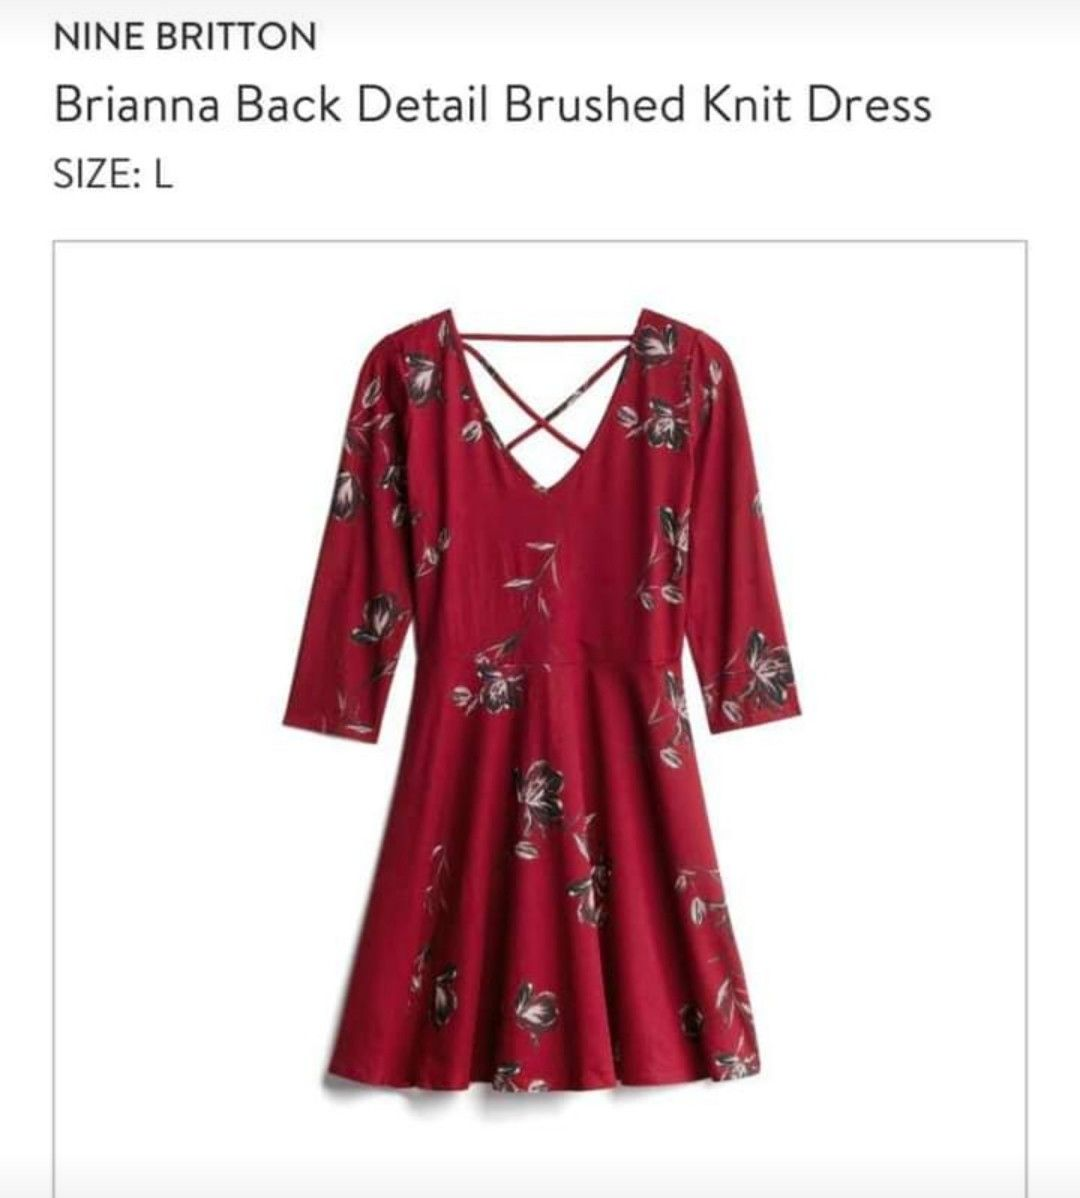 Pin By Carolyn Gates On Stitch Fix Threads Buttons And Zippers Knit Dress Dresses With Sleeves Dresses